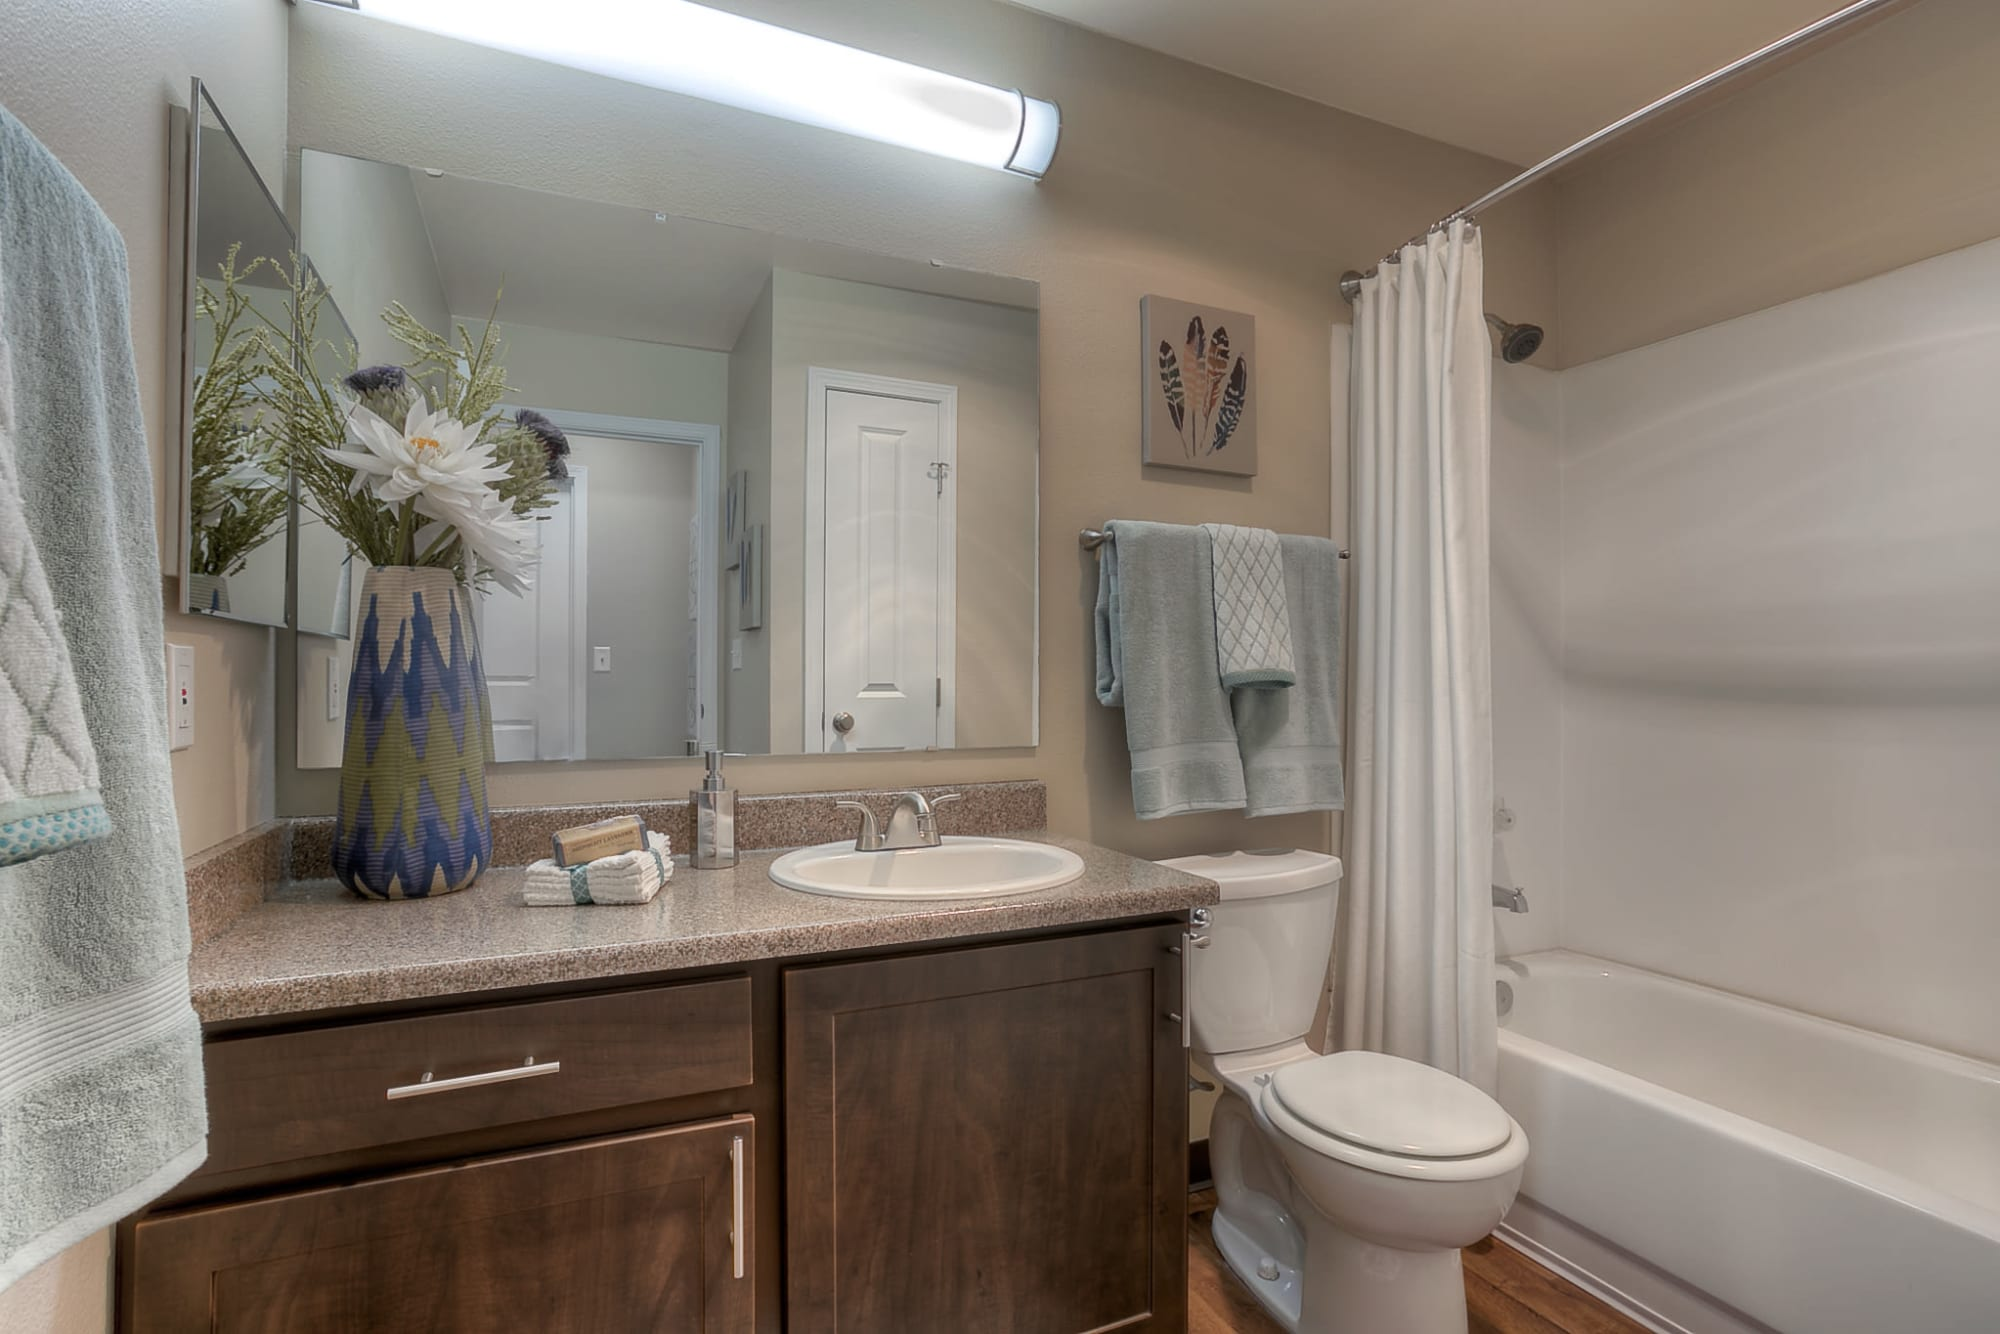 Renovated Bathroom with tub at Pebble Cove Apartments in Renton